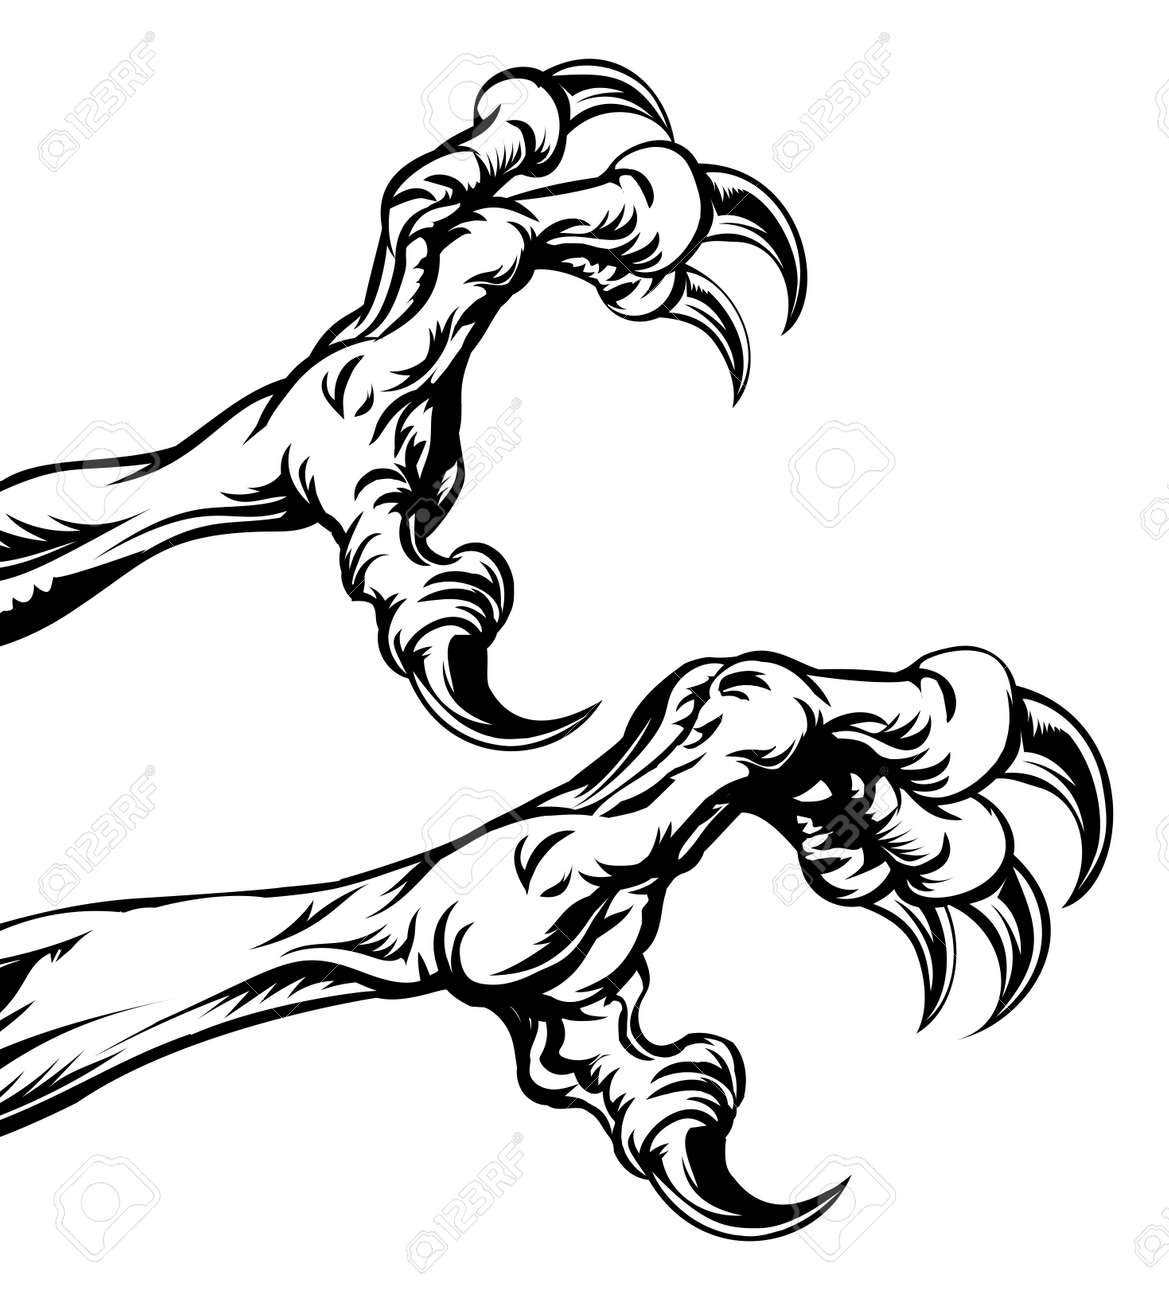 an illustration of eagle or monster animal claws or talons royalty rh 123rf com Eagle Silhouette eagle football mascot clipart